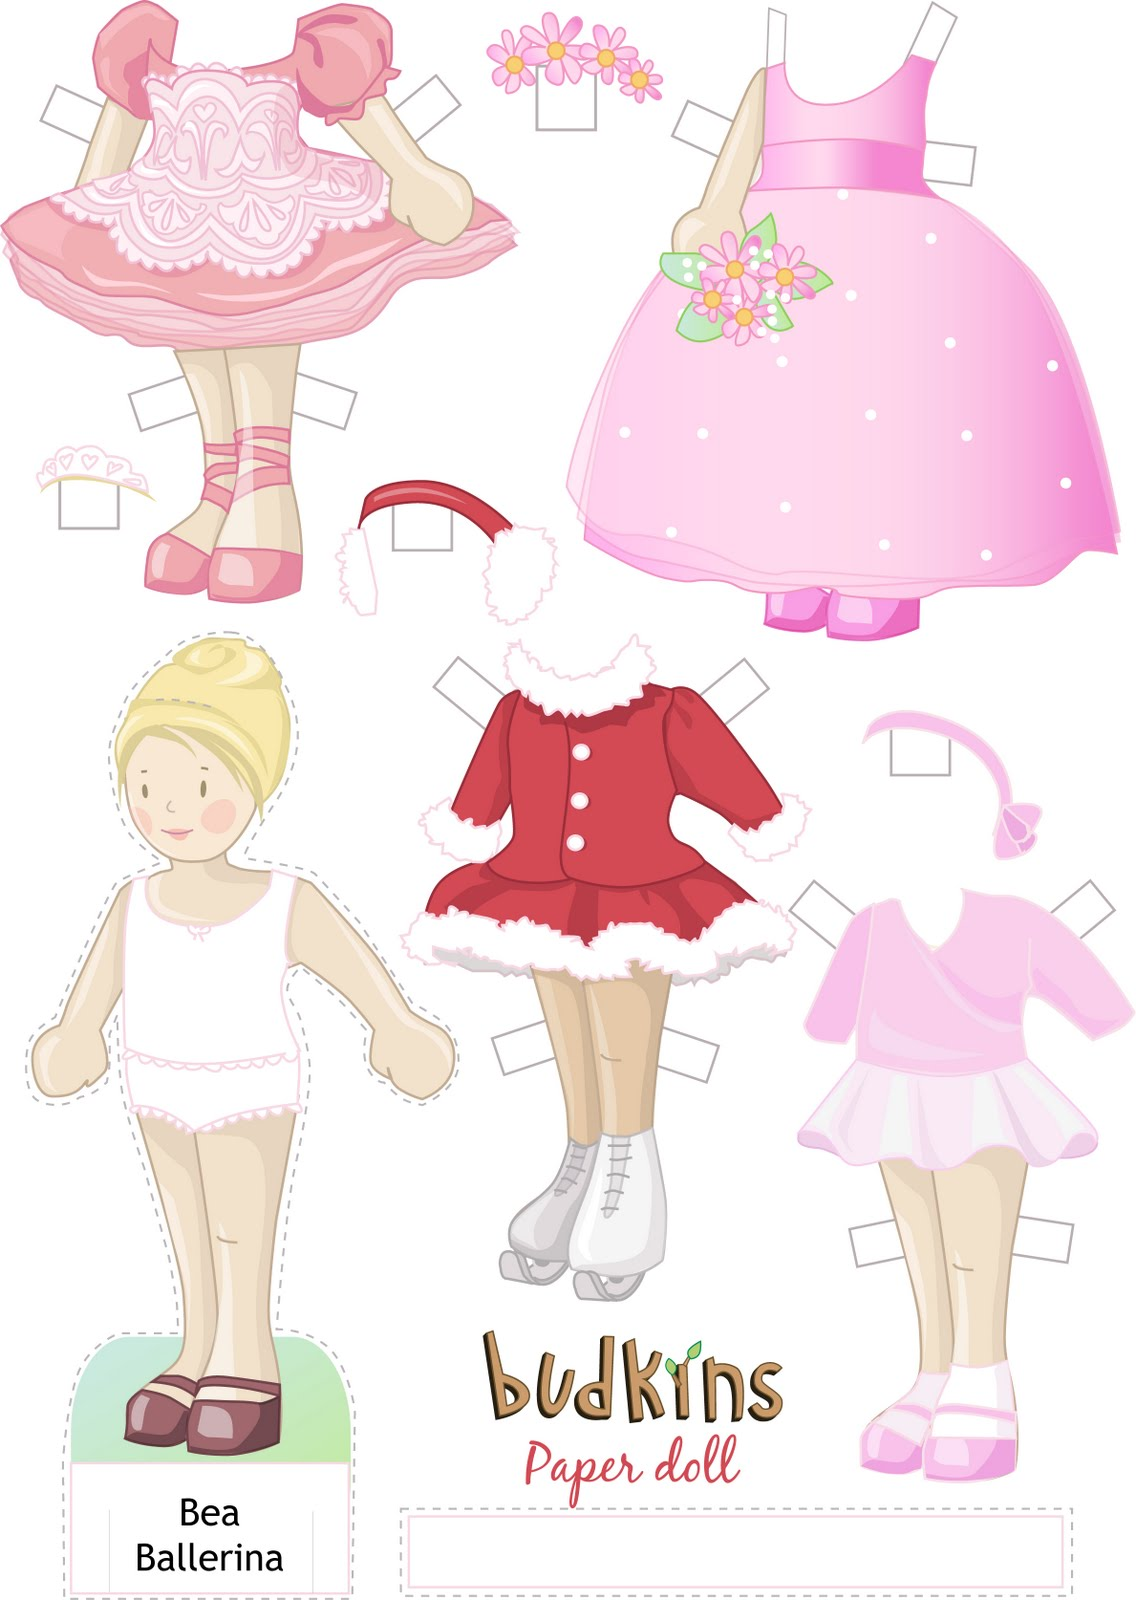 Stupendous image regarding paper doll printable